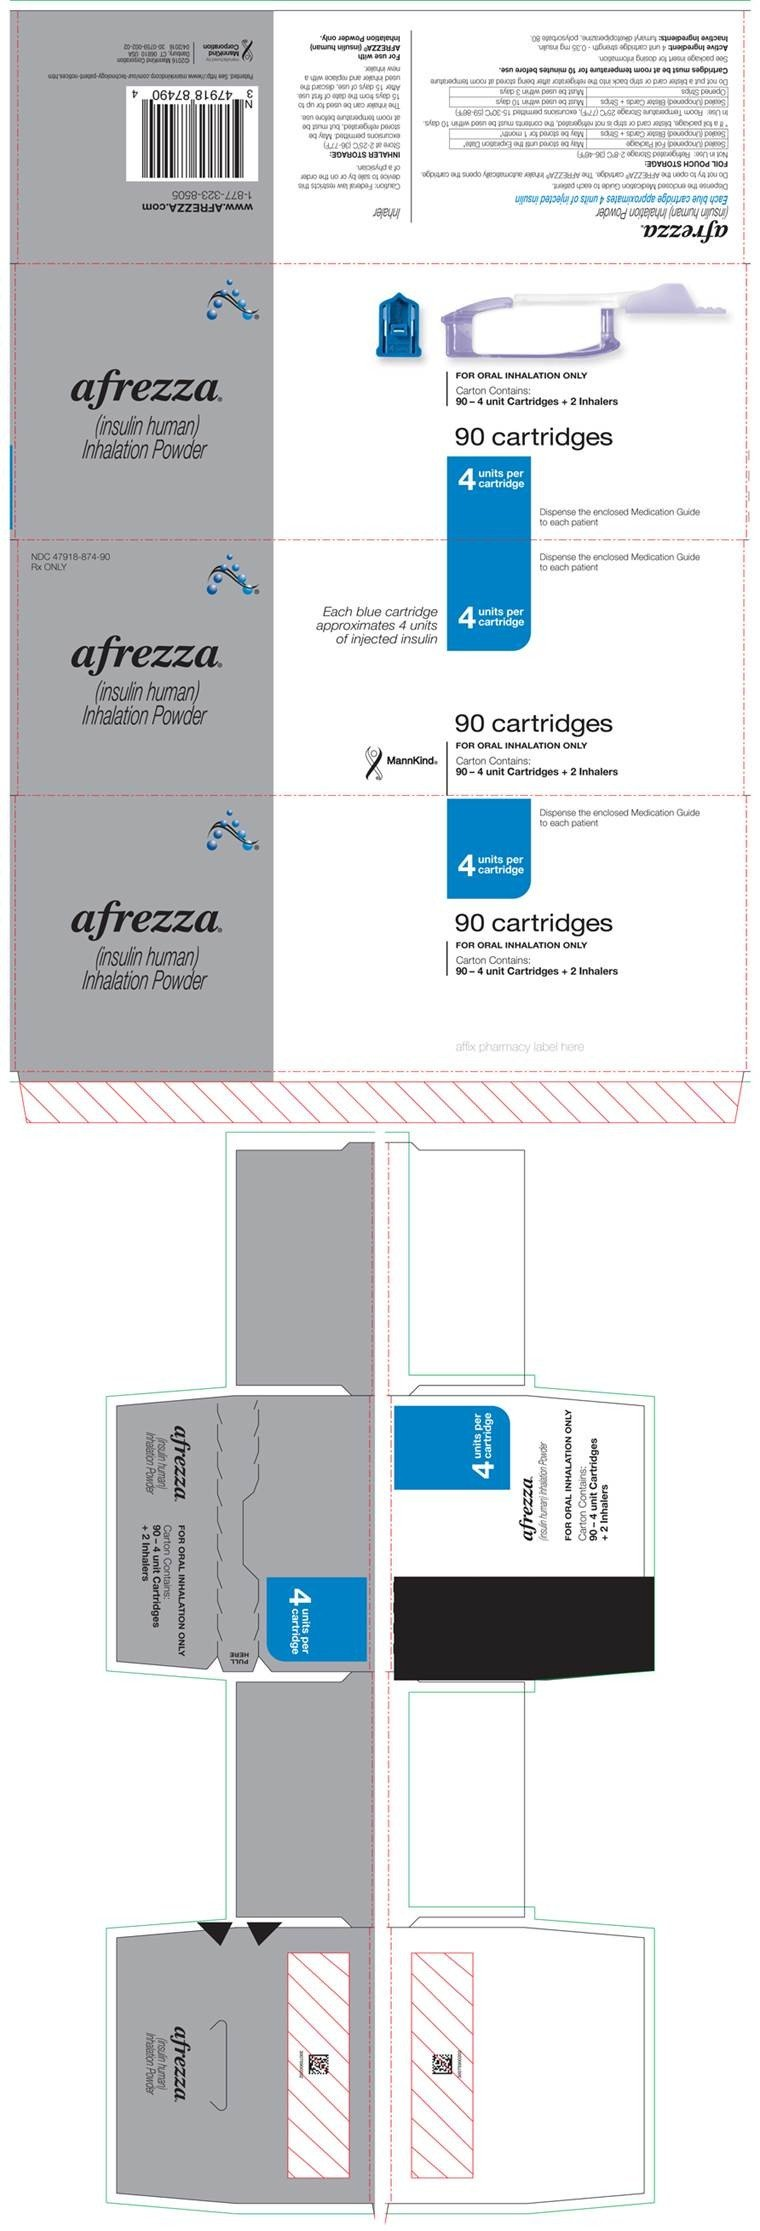 Afrezza Fda Prescribing Information Side Effects And Uses